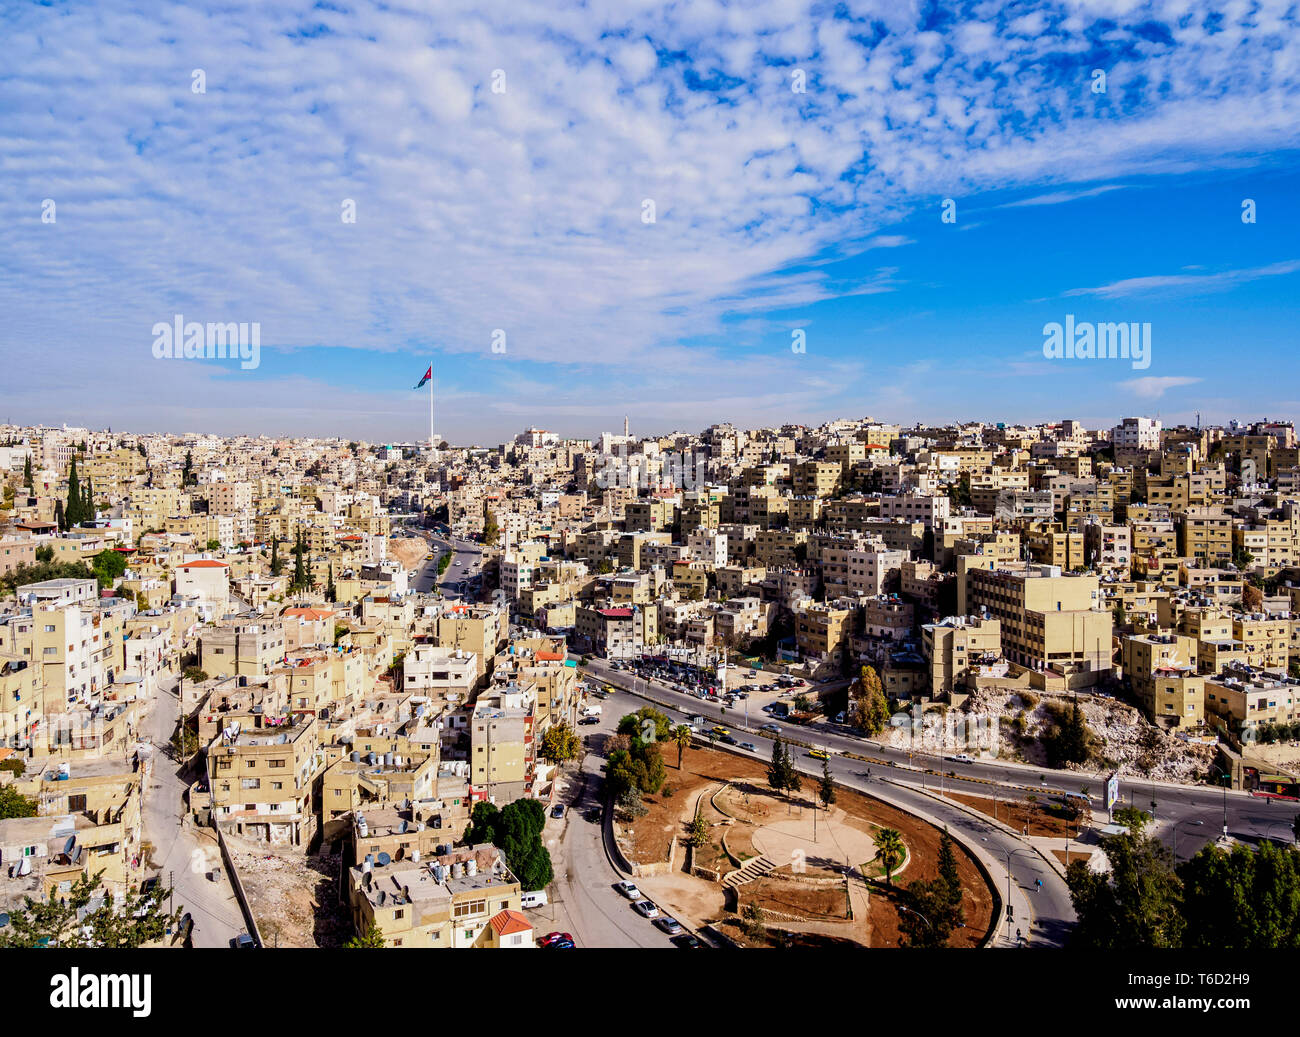 Cityscape seen from Citadel Hill, Amman, Amman Governorate, Jordan - Stock Image